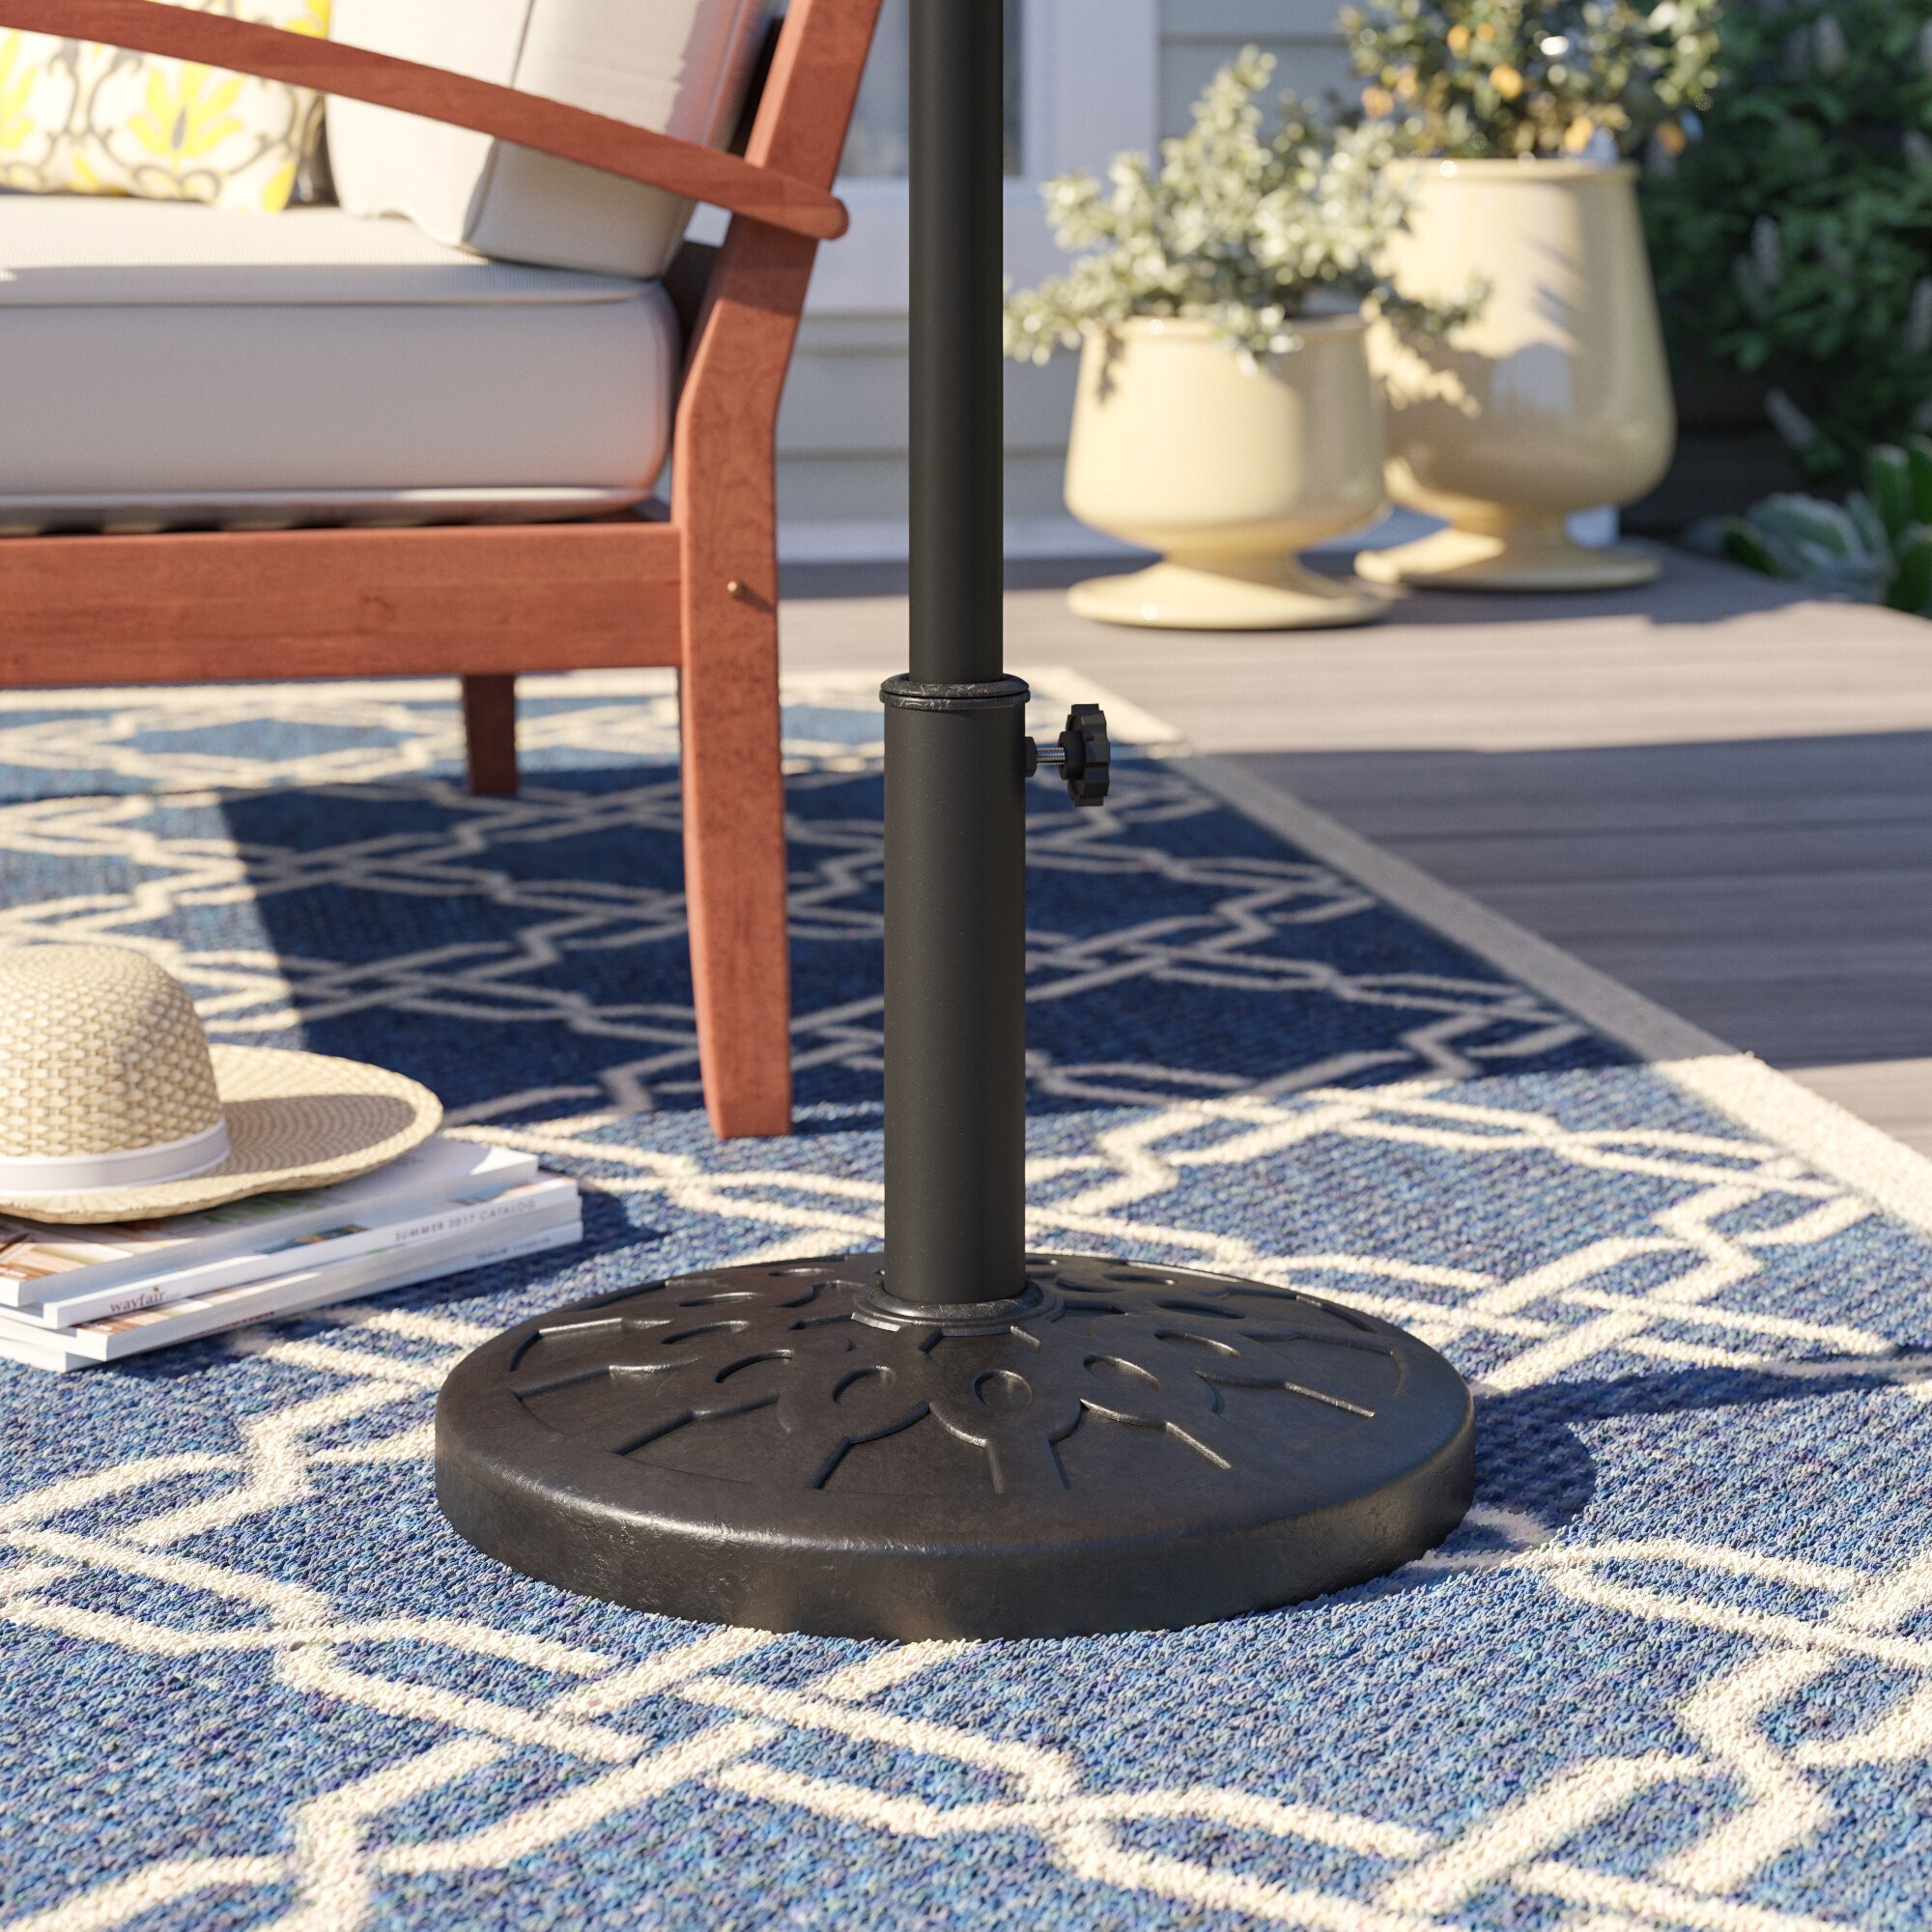 How To Choose A Patio Umbrella Stand & Base